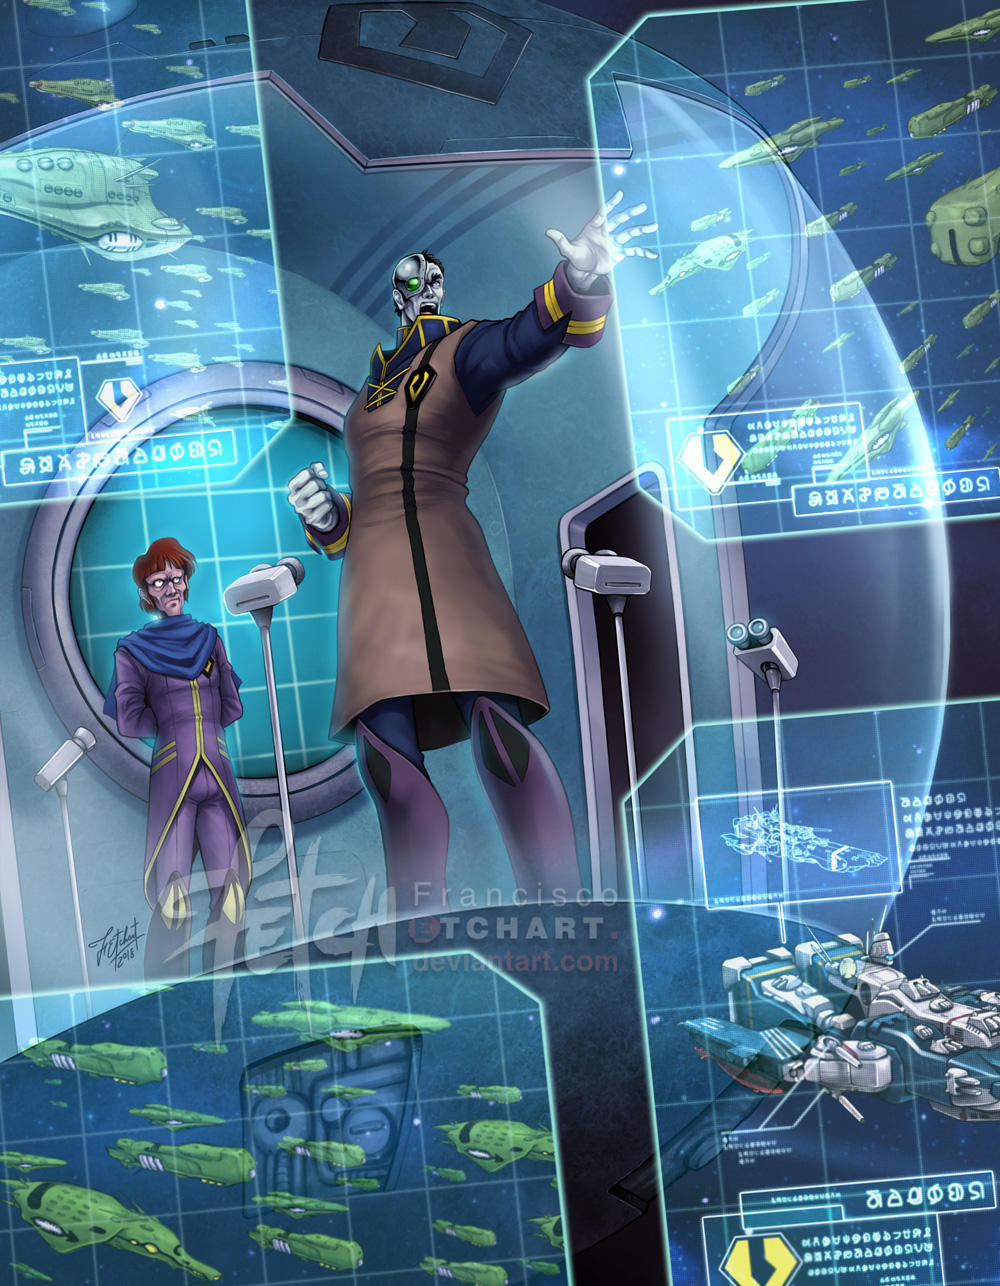 alien angry breetai choujikuu_yousai_macross cyborg emblem exsedol_folmo faceplate fleet franciscoetchart giant highres holographic_interface holographic_monitor insignia macross mecha military military_uniform nupetiet-vergnitzs officer picket_patrol_ship queadol-magdomilla quiltra-queleual robotech sdf-1 shouting spacecraft_interior thurvel-salan uniform zentlardy_alphabet zentradi